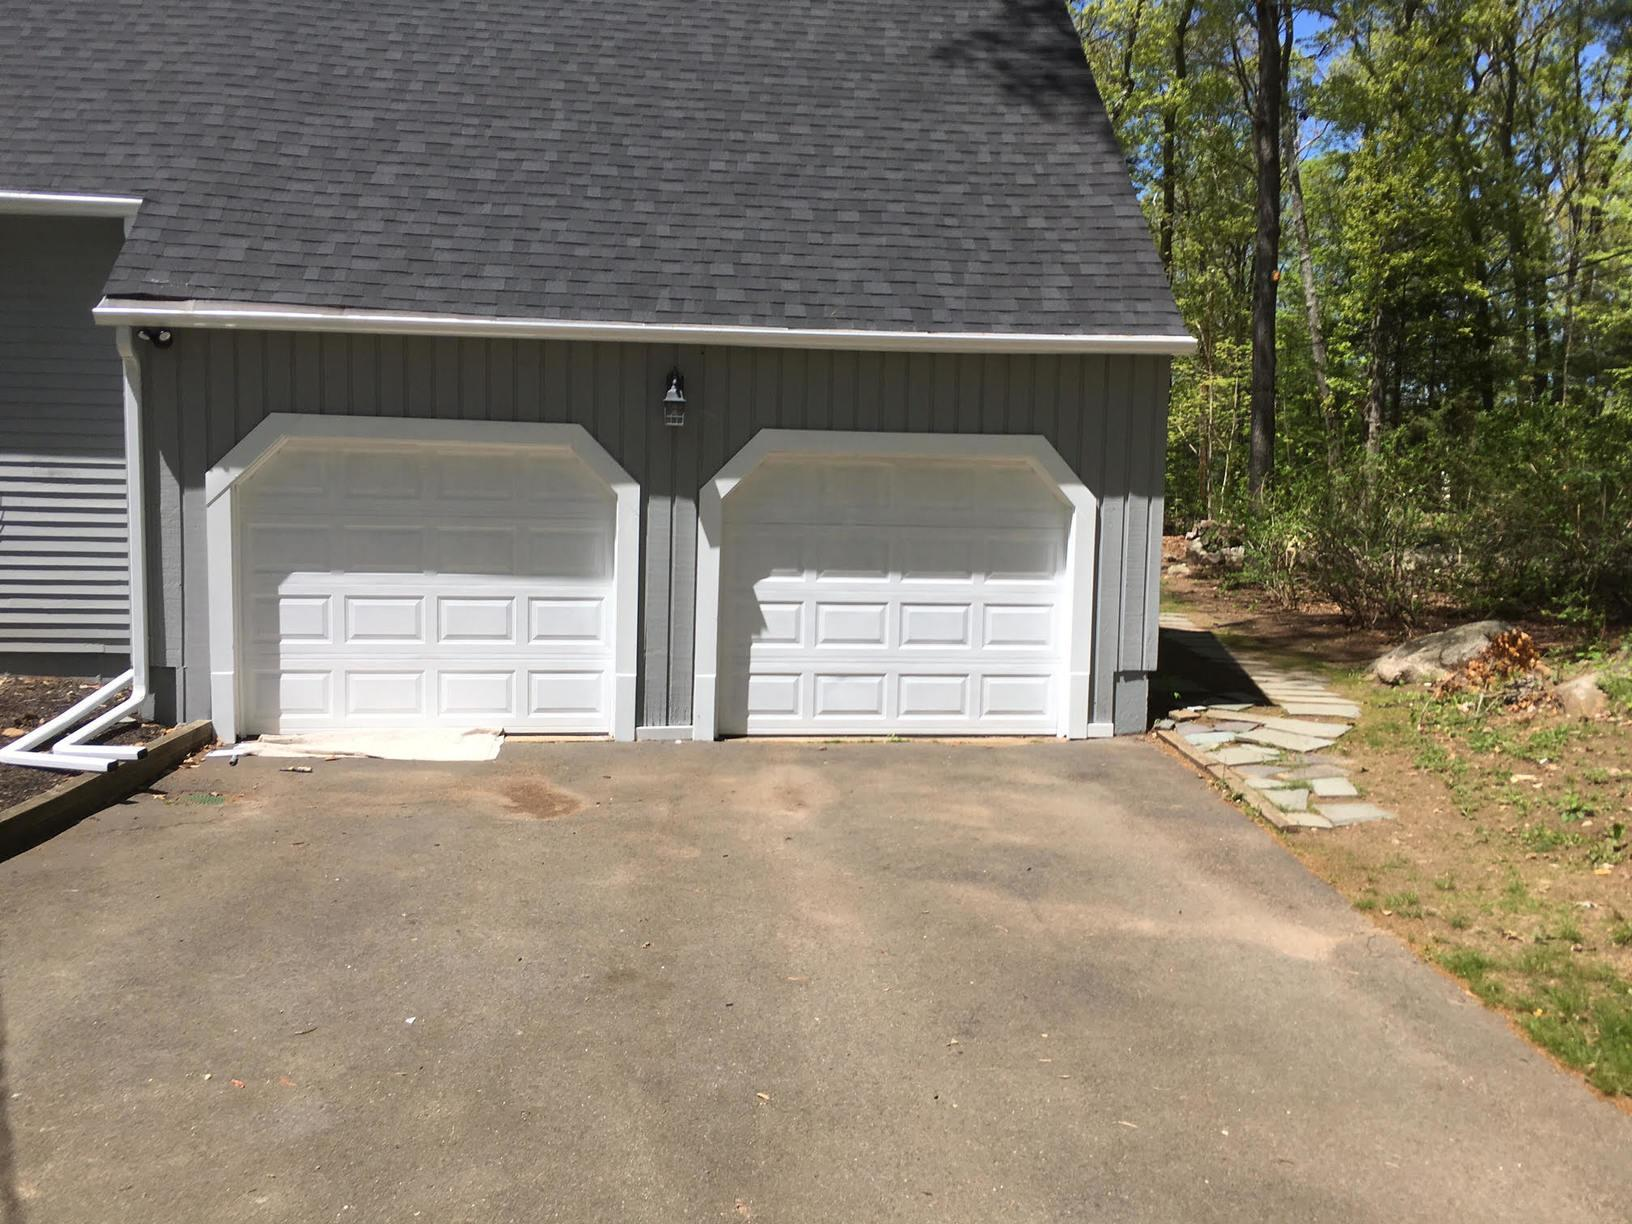 Exterior Garage Painting in Stamford, CT - After Photo